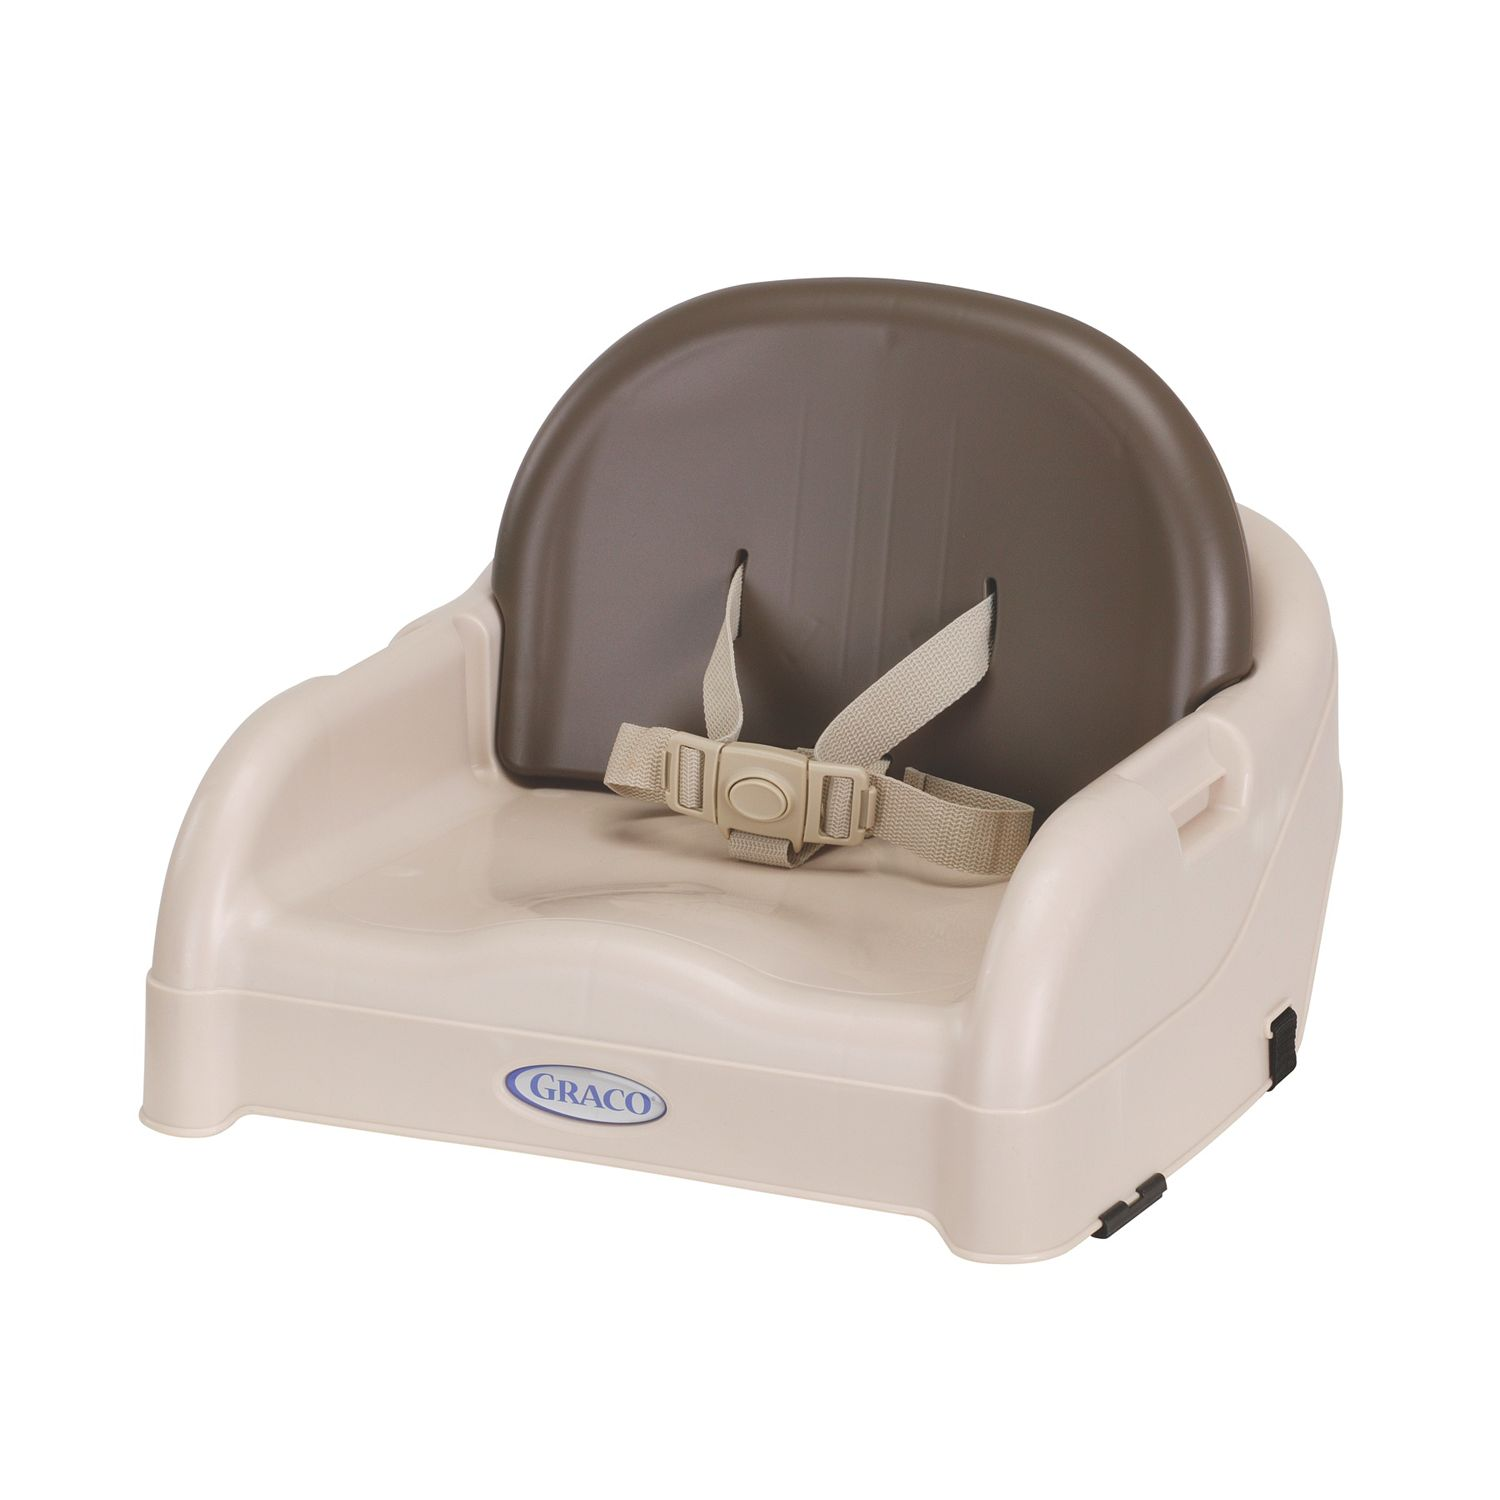 Superieur Graco Blossom Booster Seat